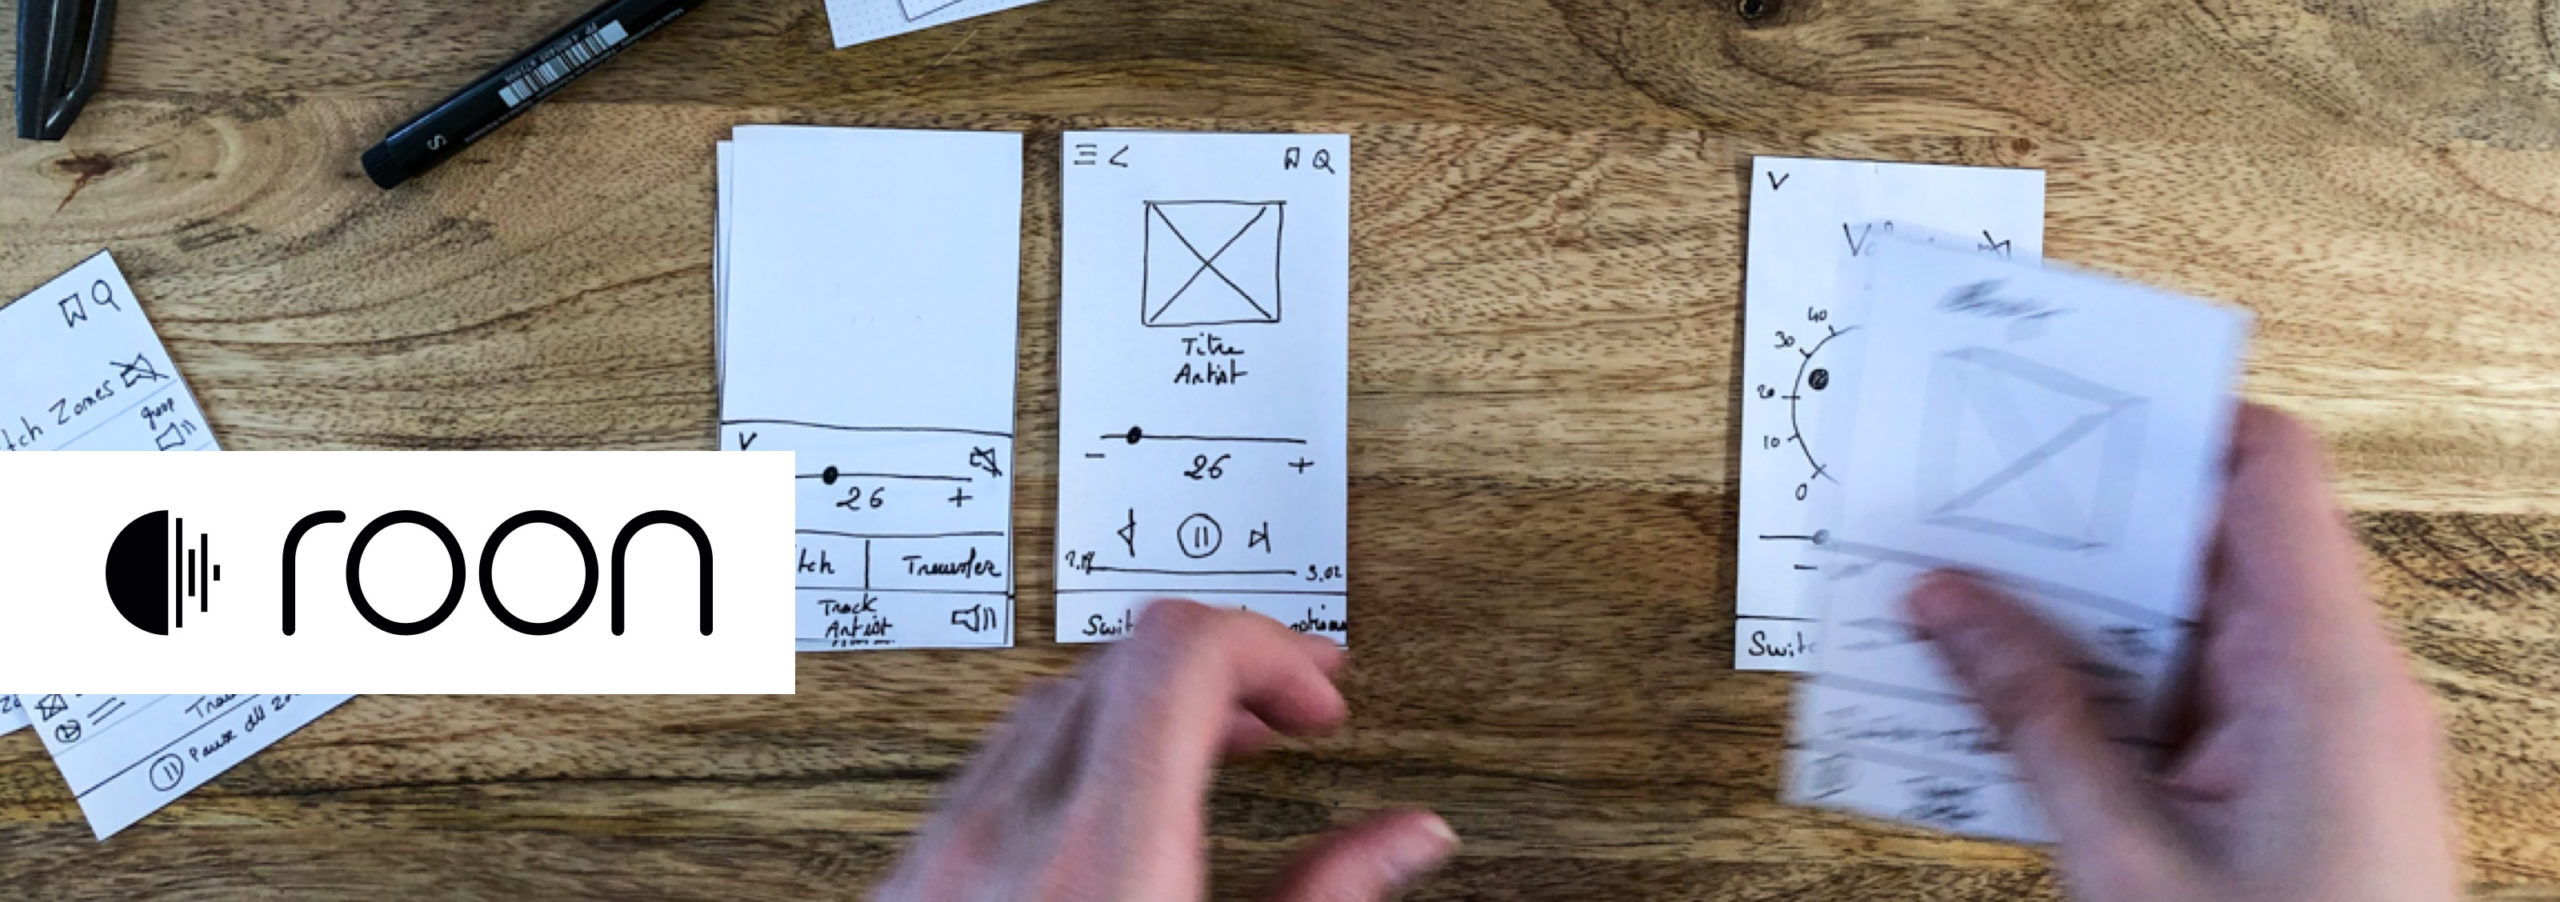 Working on the paper prototype version of Roon App